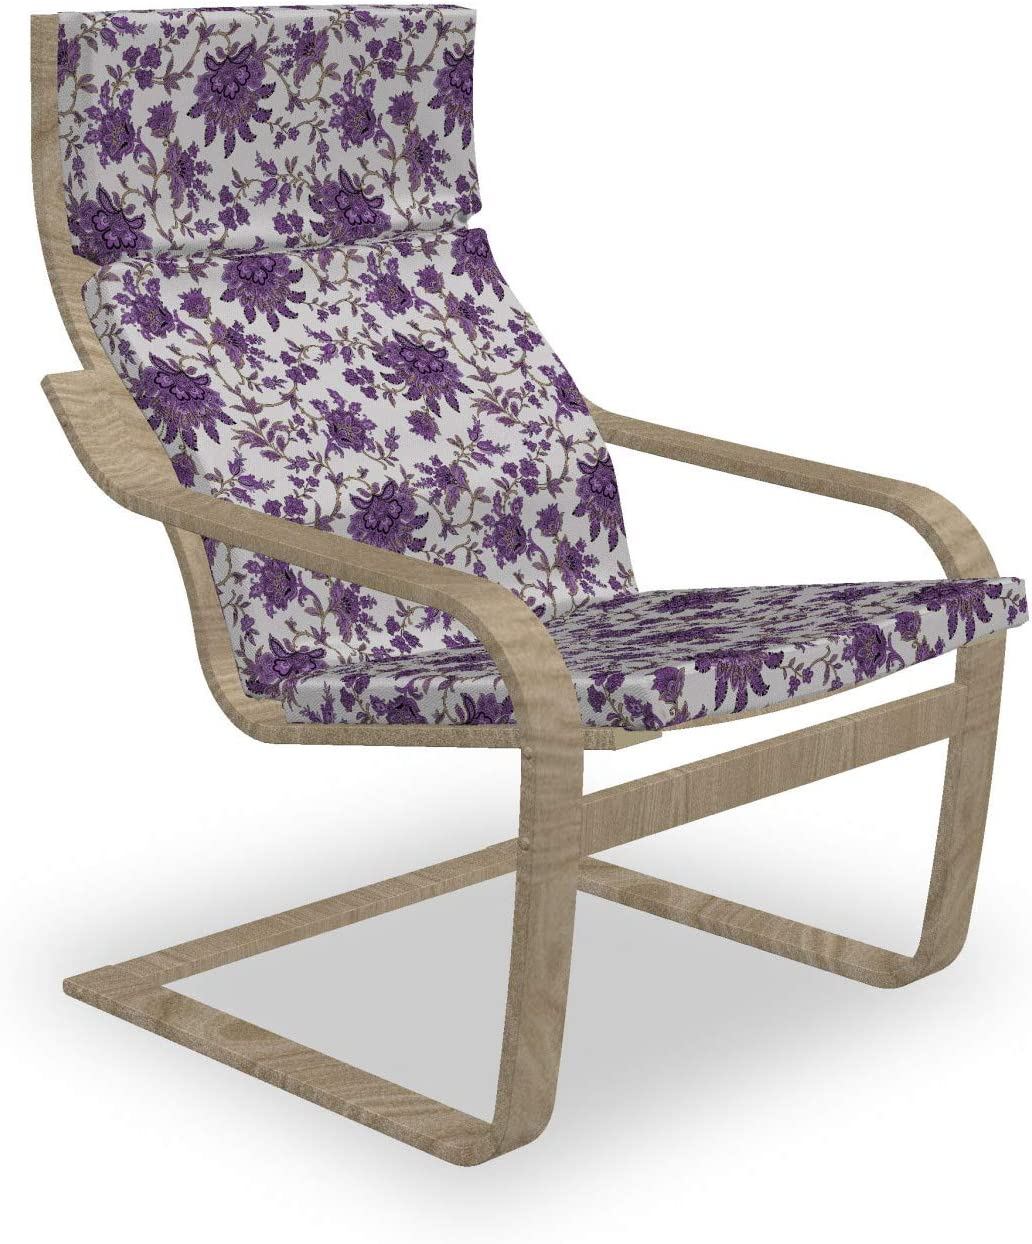 Cheap mail order shopping Max 58% OFF Ambesonne Floral Armchair Pad Romantically Slipcover and Arrang